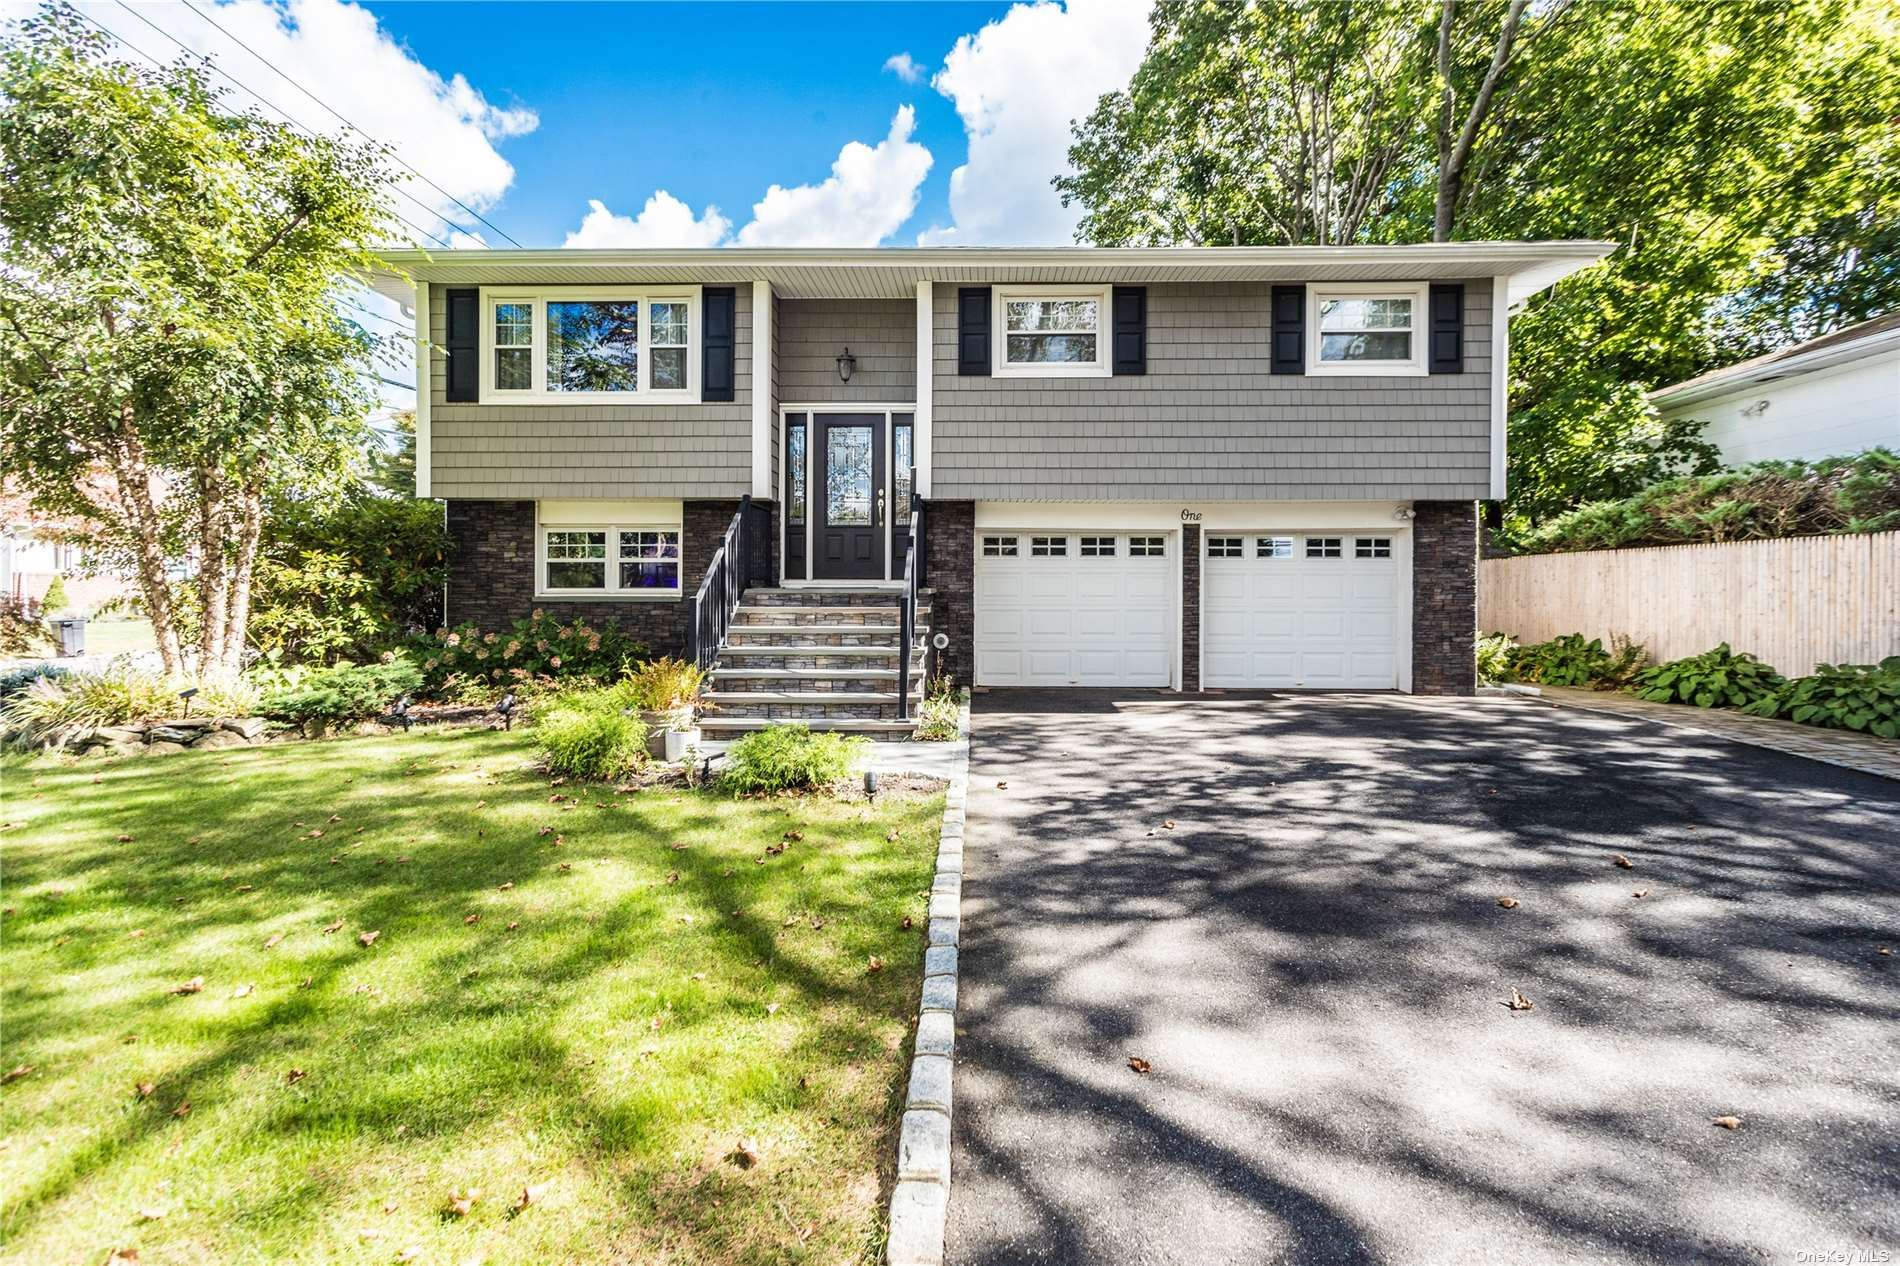 1 Wagner Court, Melville, NY 11747 - MLS#: 3350136